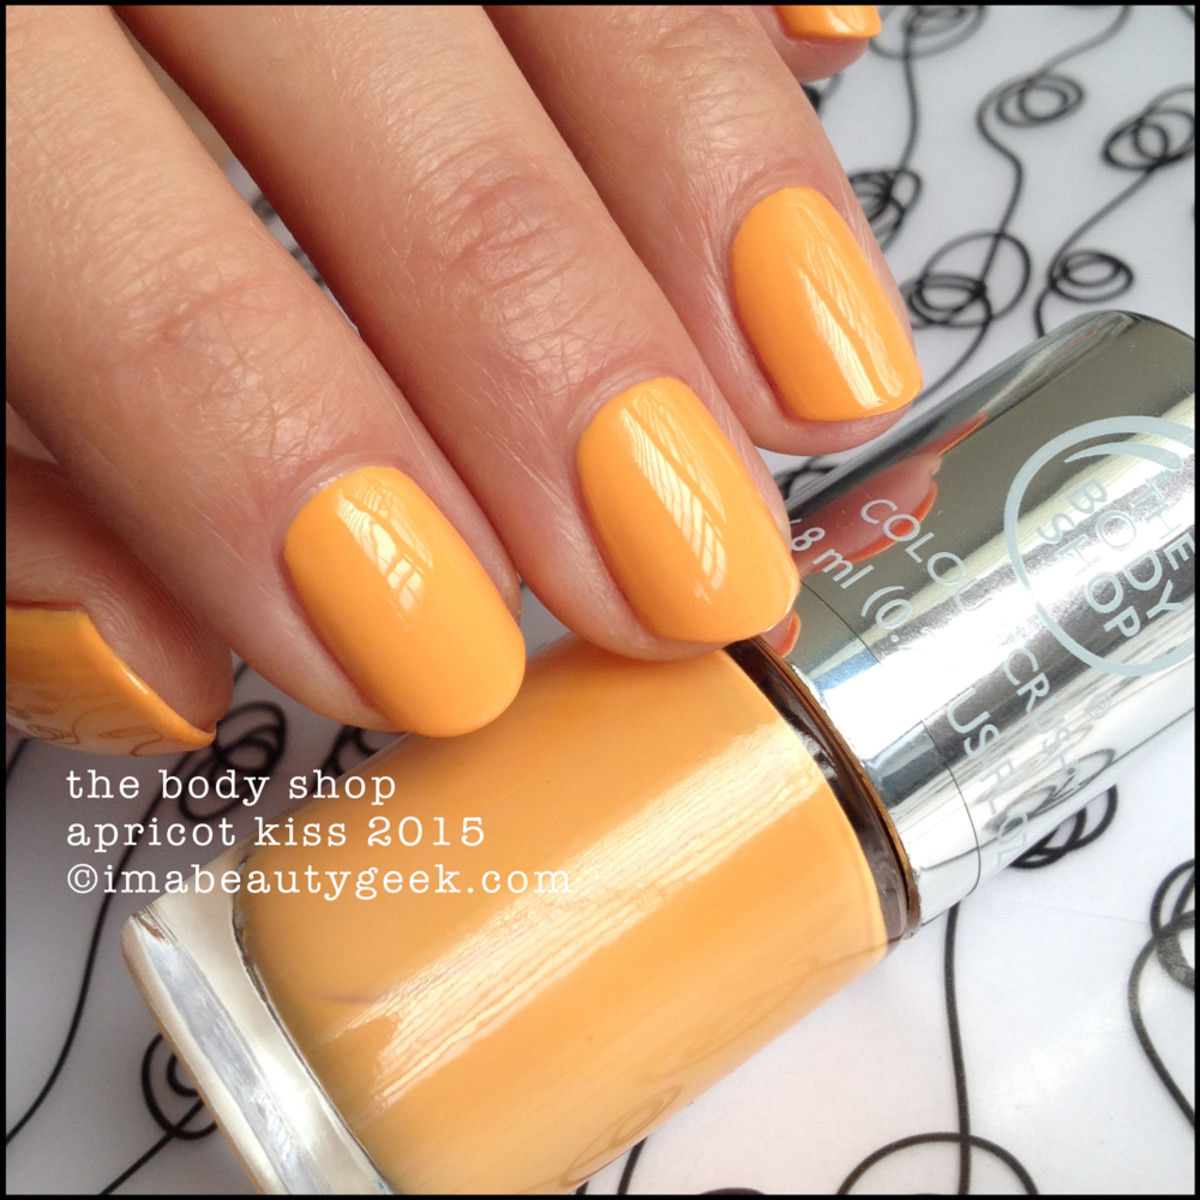 The Body Shop Apricot Kiss Nail Polish Colour Crush